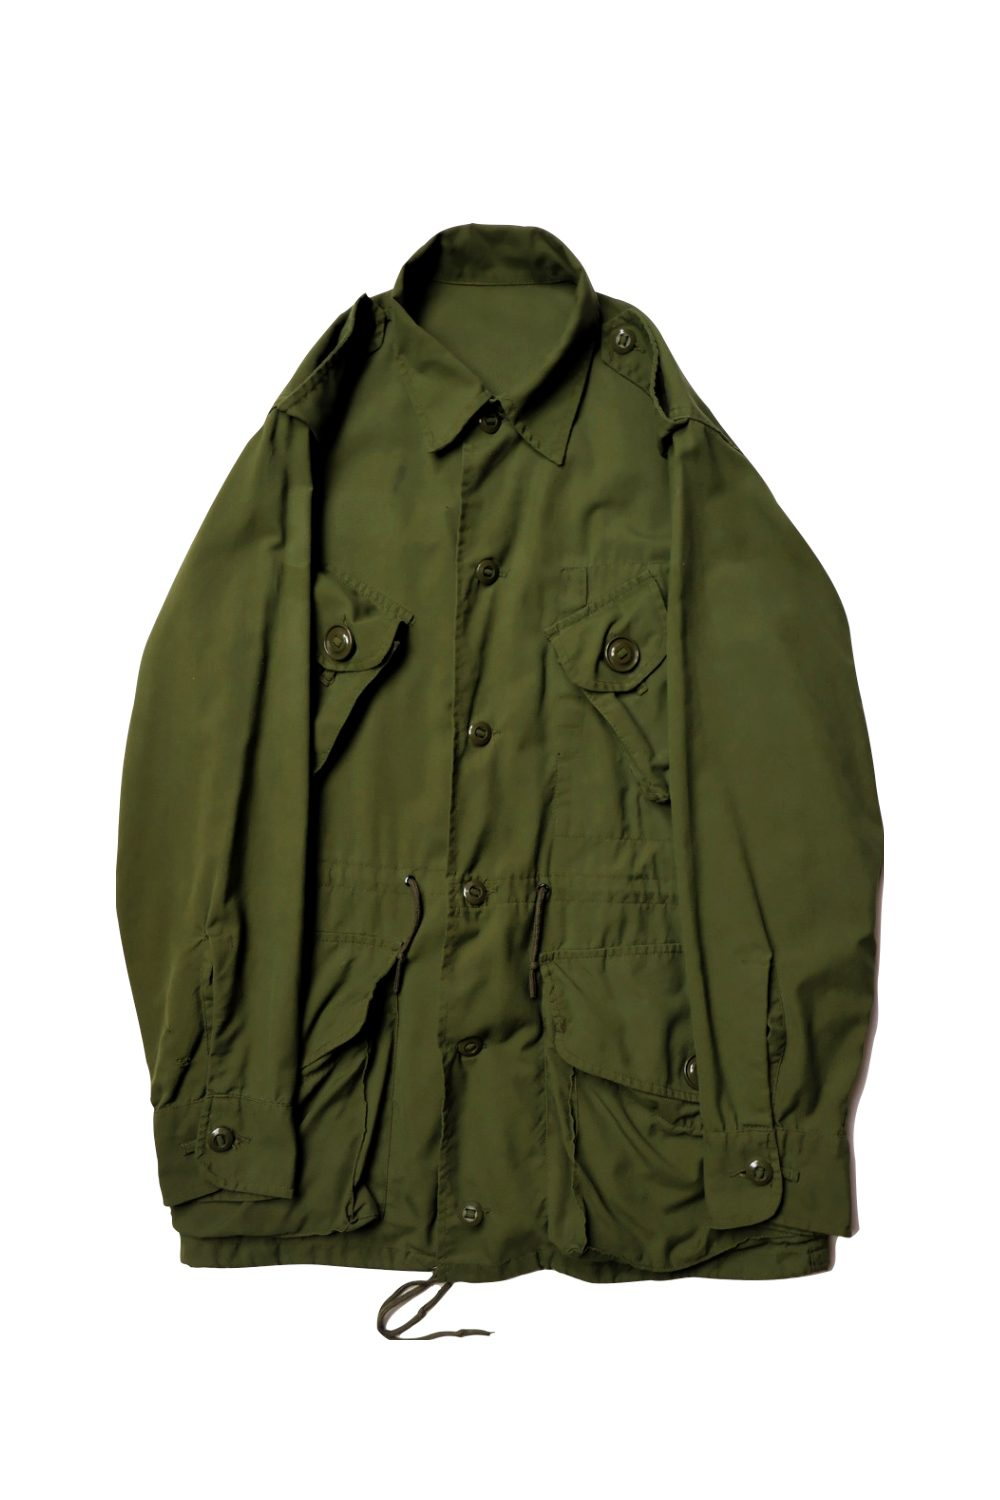 MK2 Canadian Combat Coat 1984Light Weight